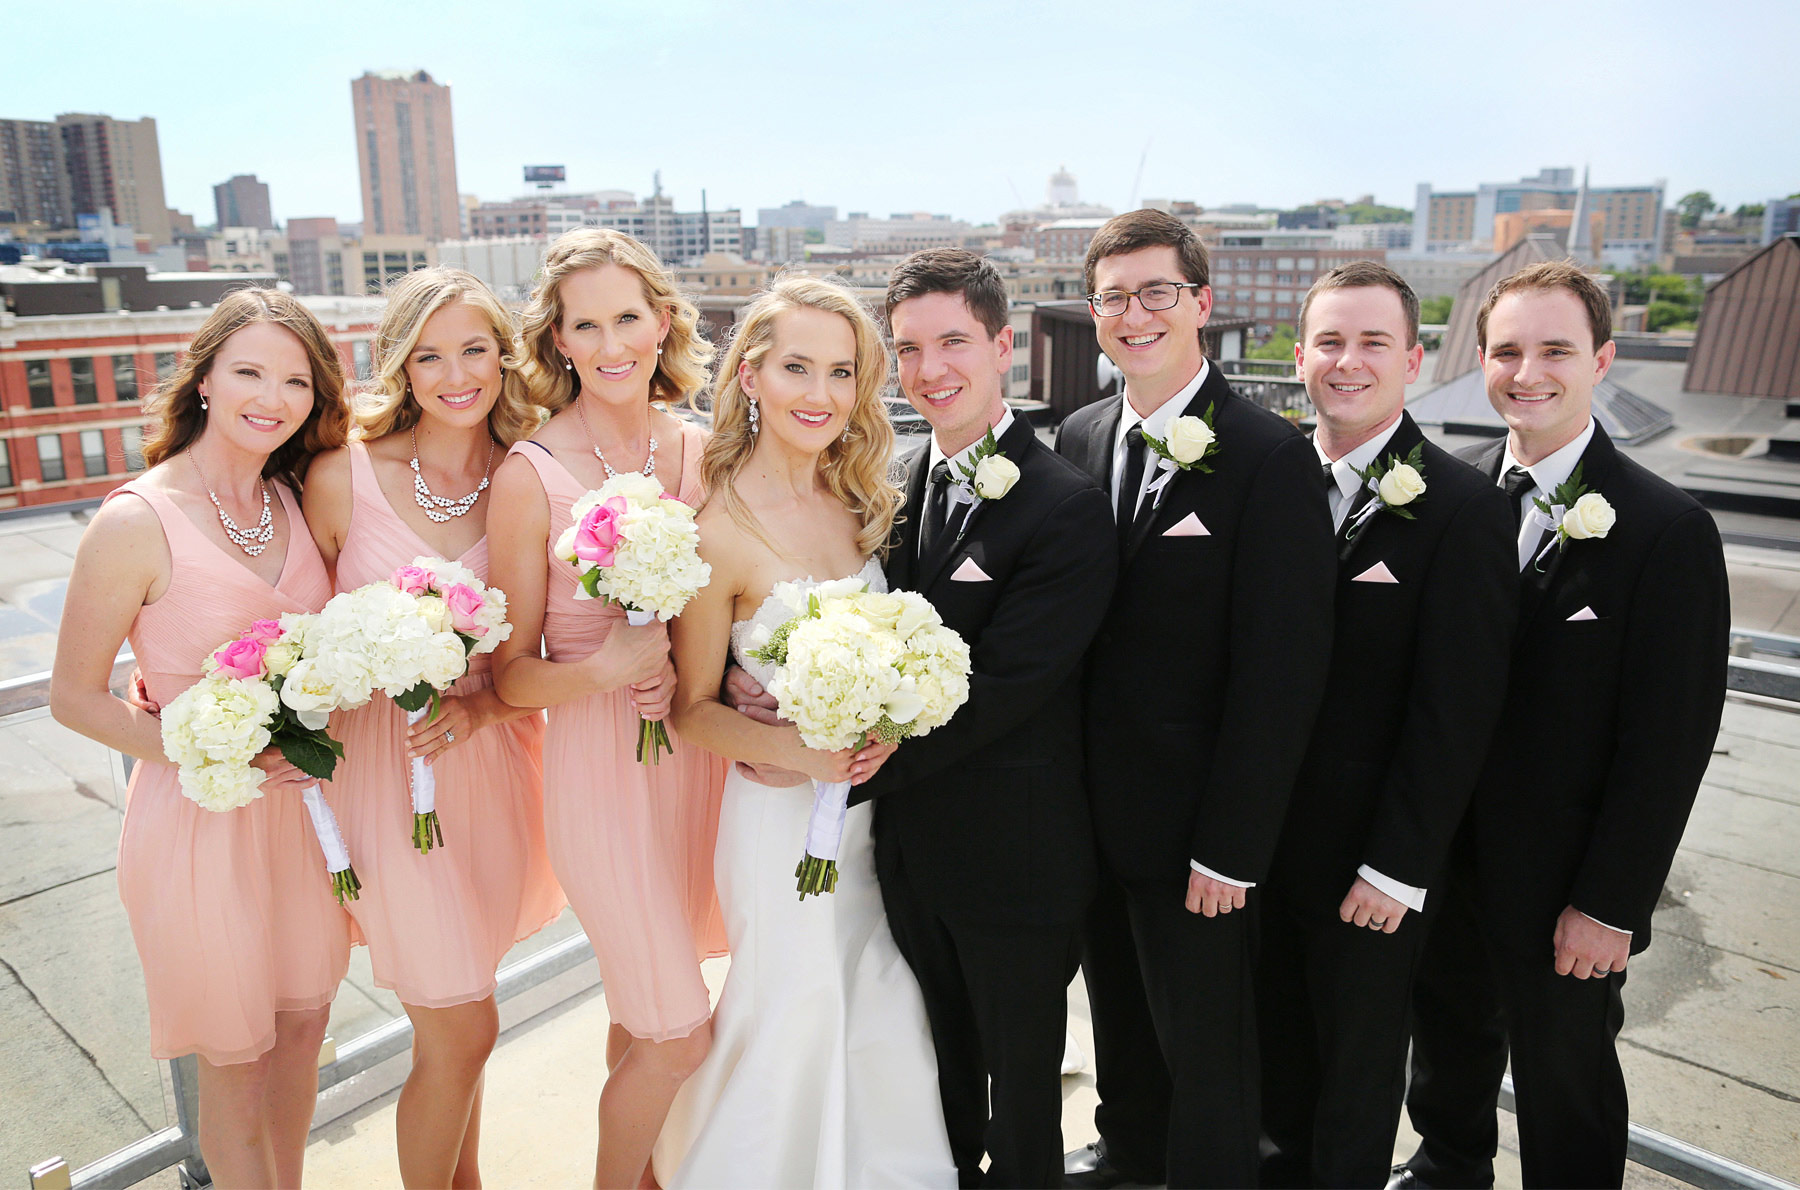 07-Saint-Paul-Minnesota-Wedding-Photographer-by-Andrew-Vick-Photography-Summer-Abulae-Bride-Groom-Bridal-Party-Bridesmaids-Groomsmen-Laura-and-Tim.jpg